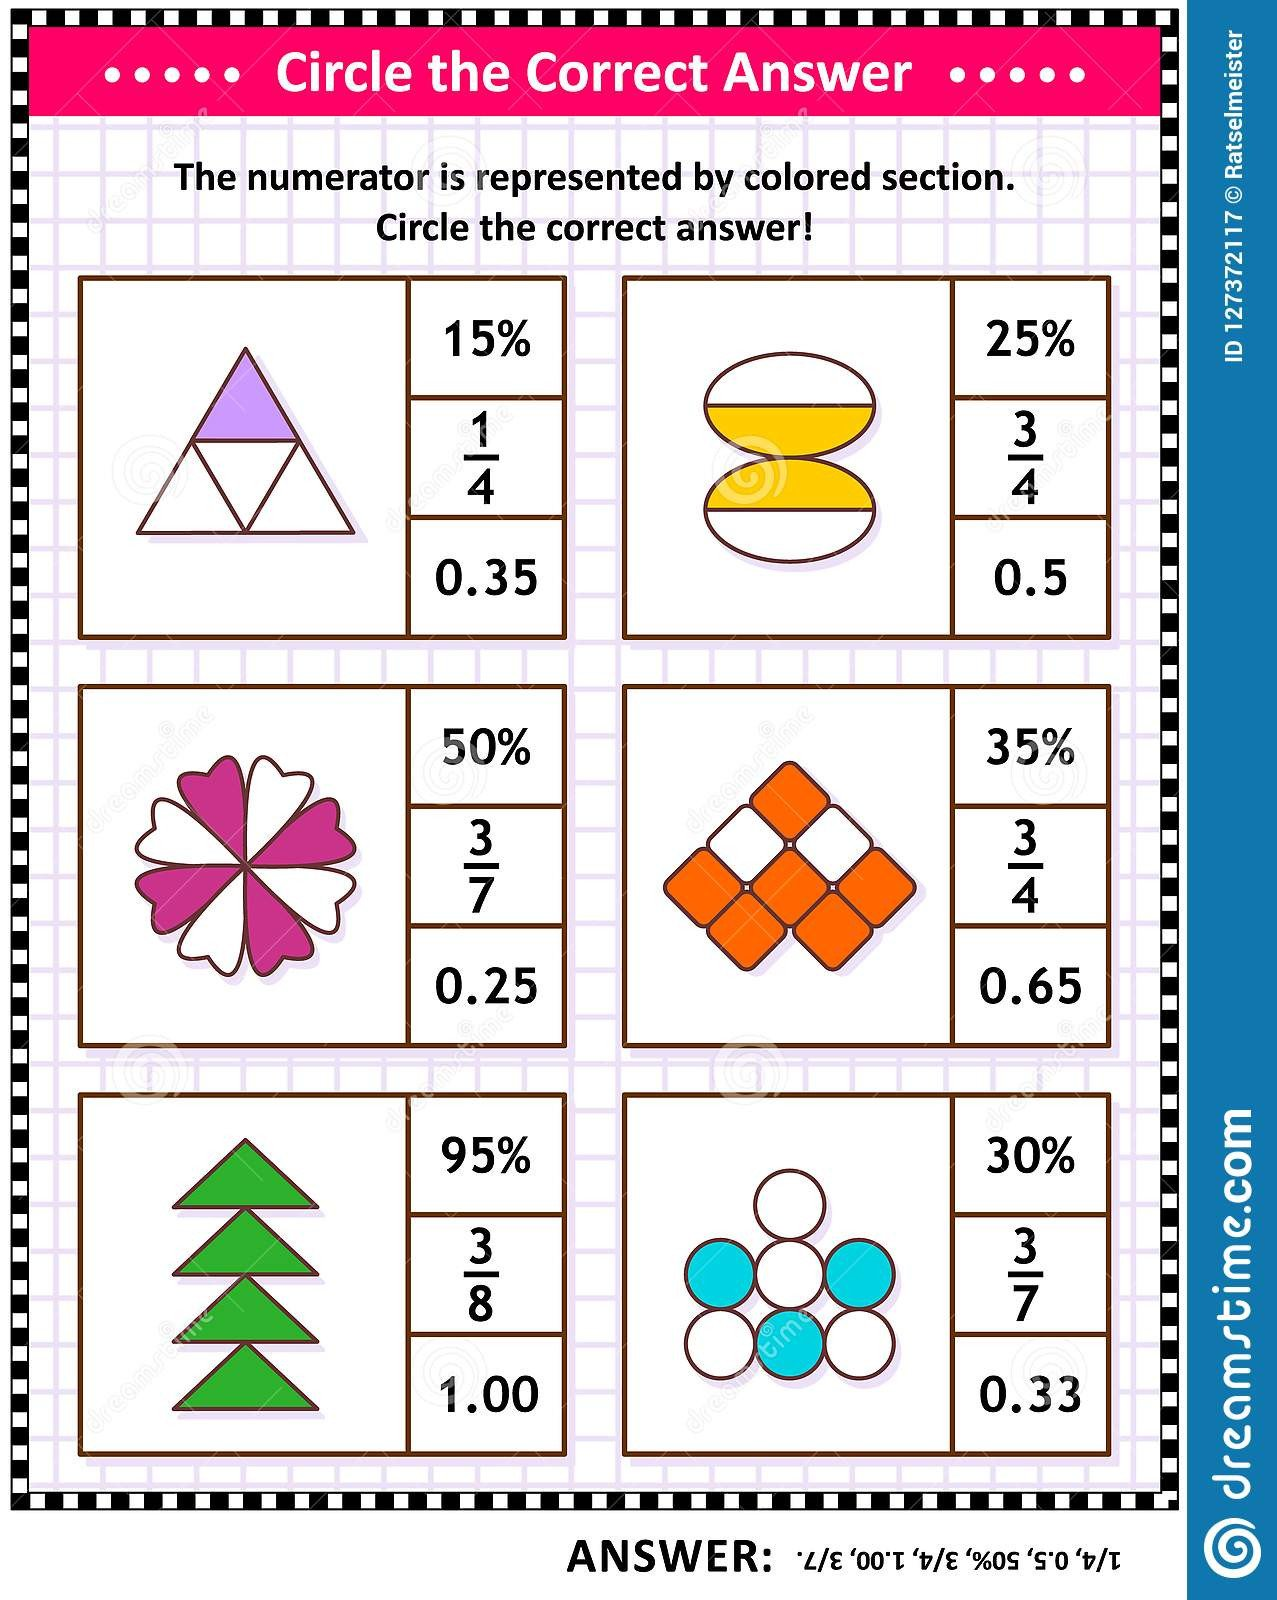 math skills training visual puzzle worksheet schoolchildren adults circle correct answer find number equivalent